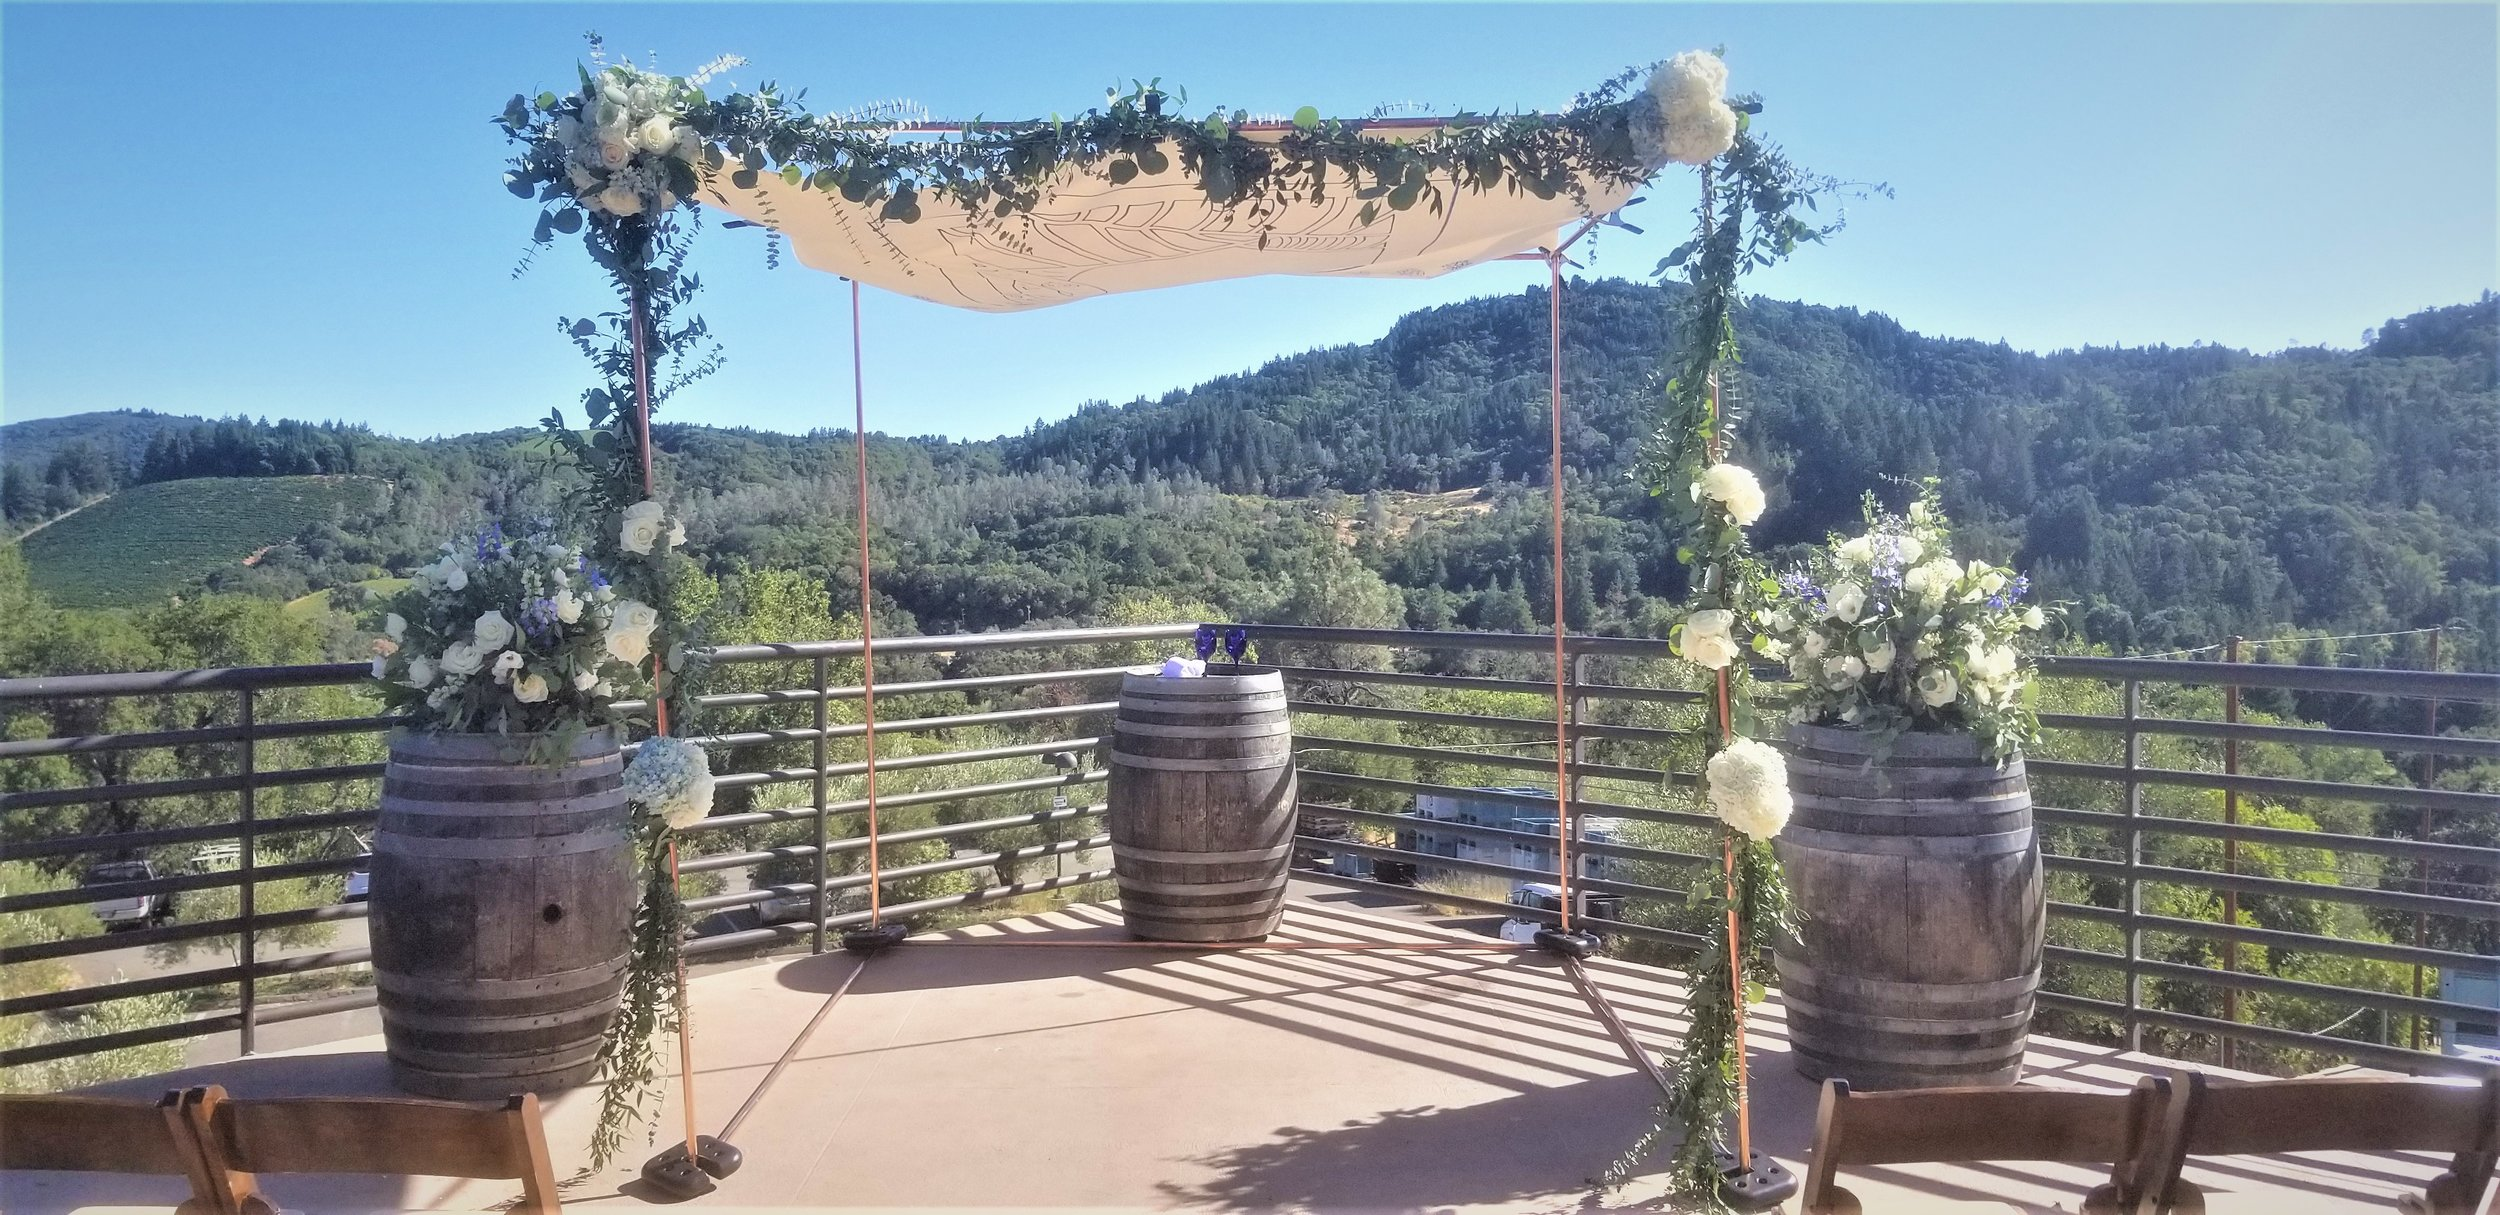 Chuppah floral and greenery, flowing Italian ruscus and eucalyptus, flowers in white and blue at the terrace at Sbragia winery in Geyserville